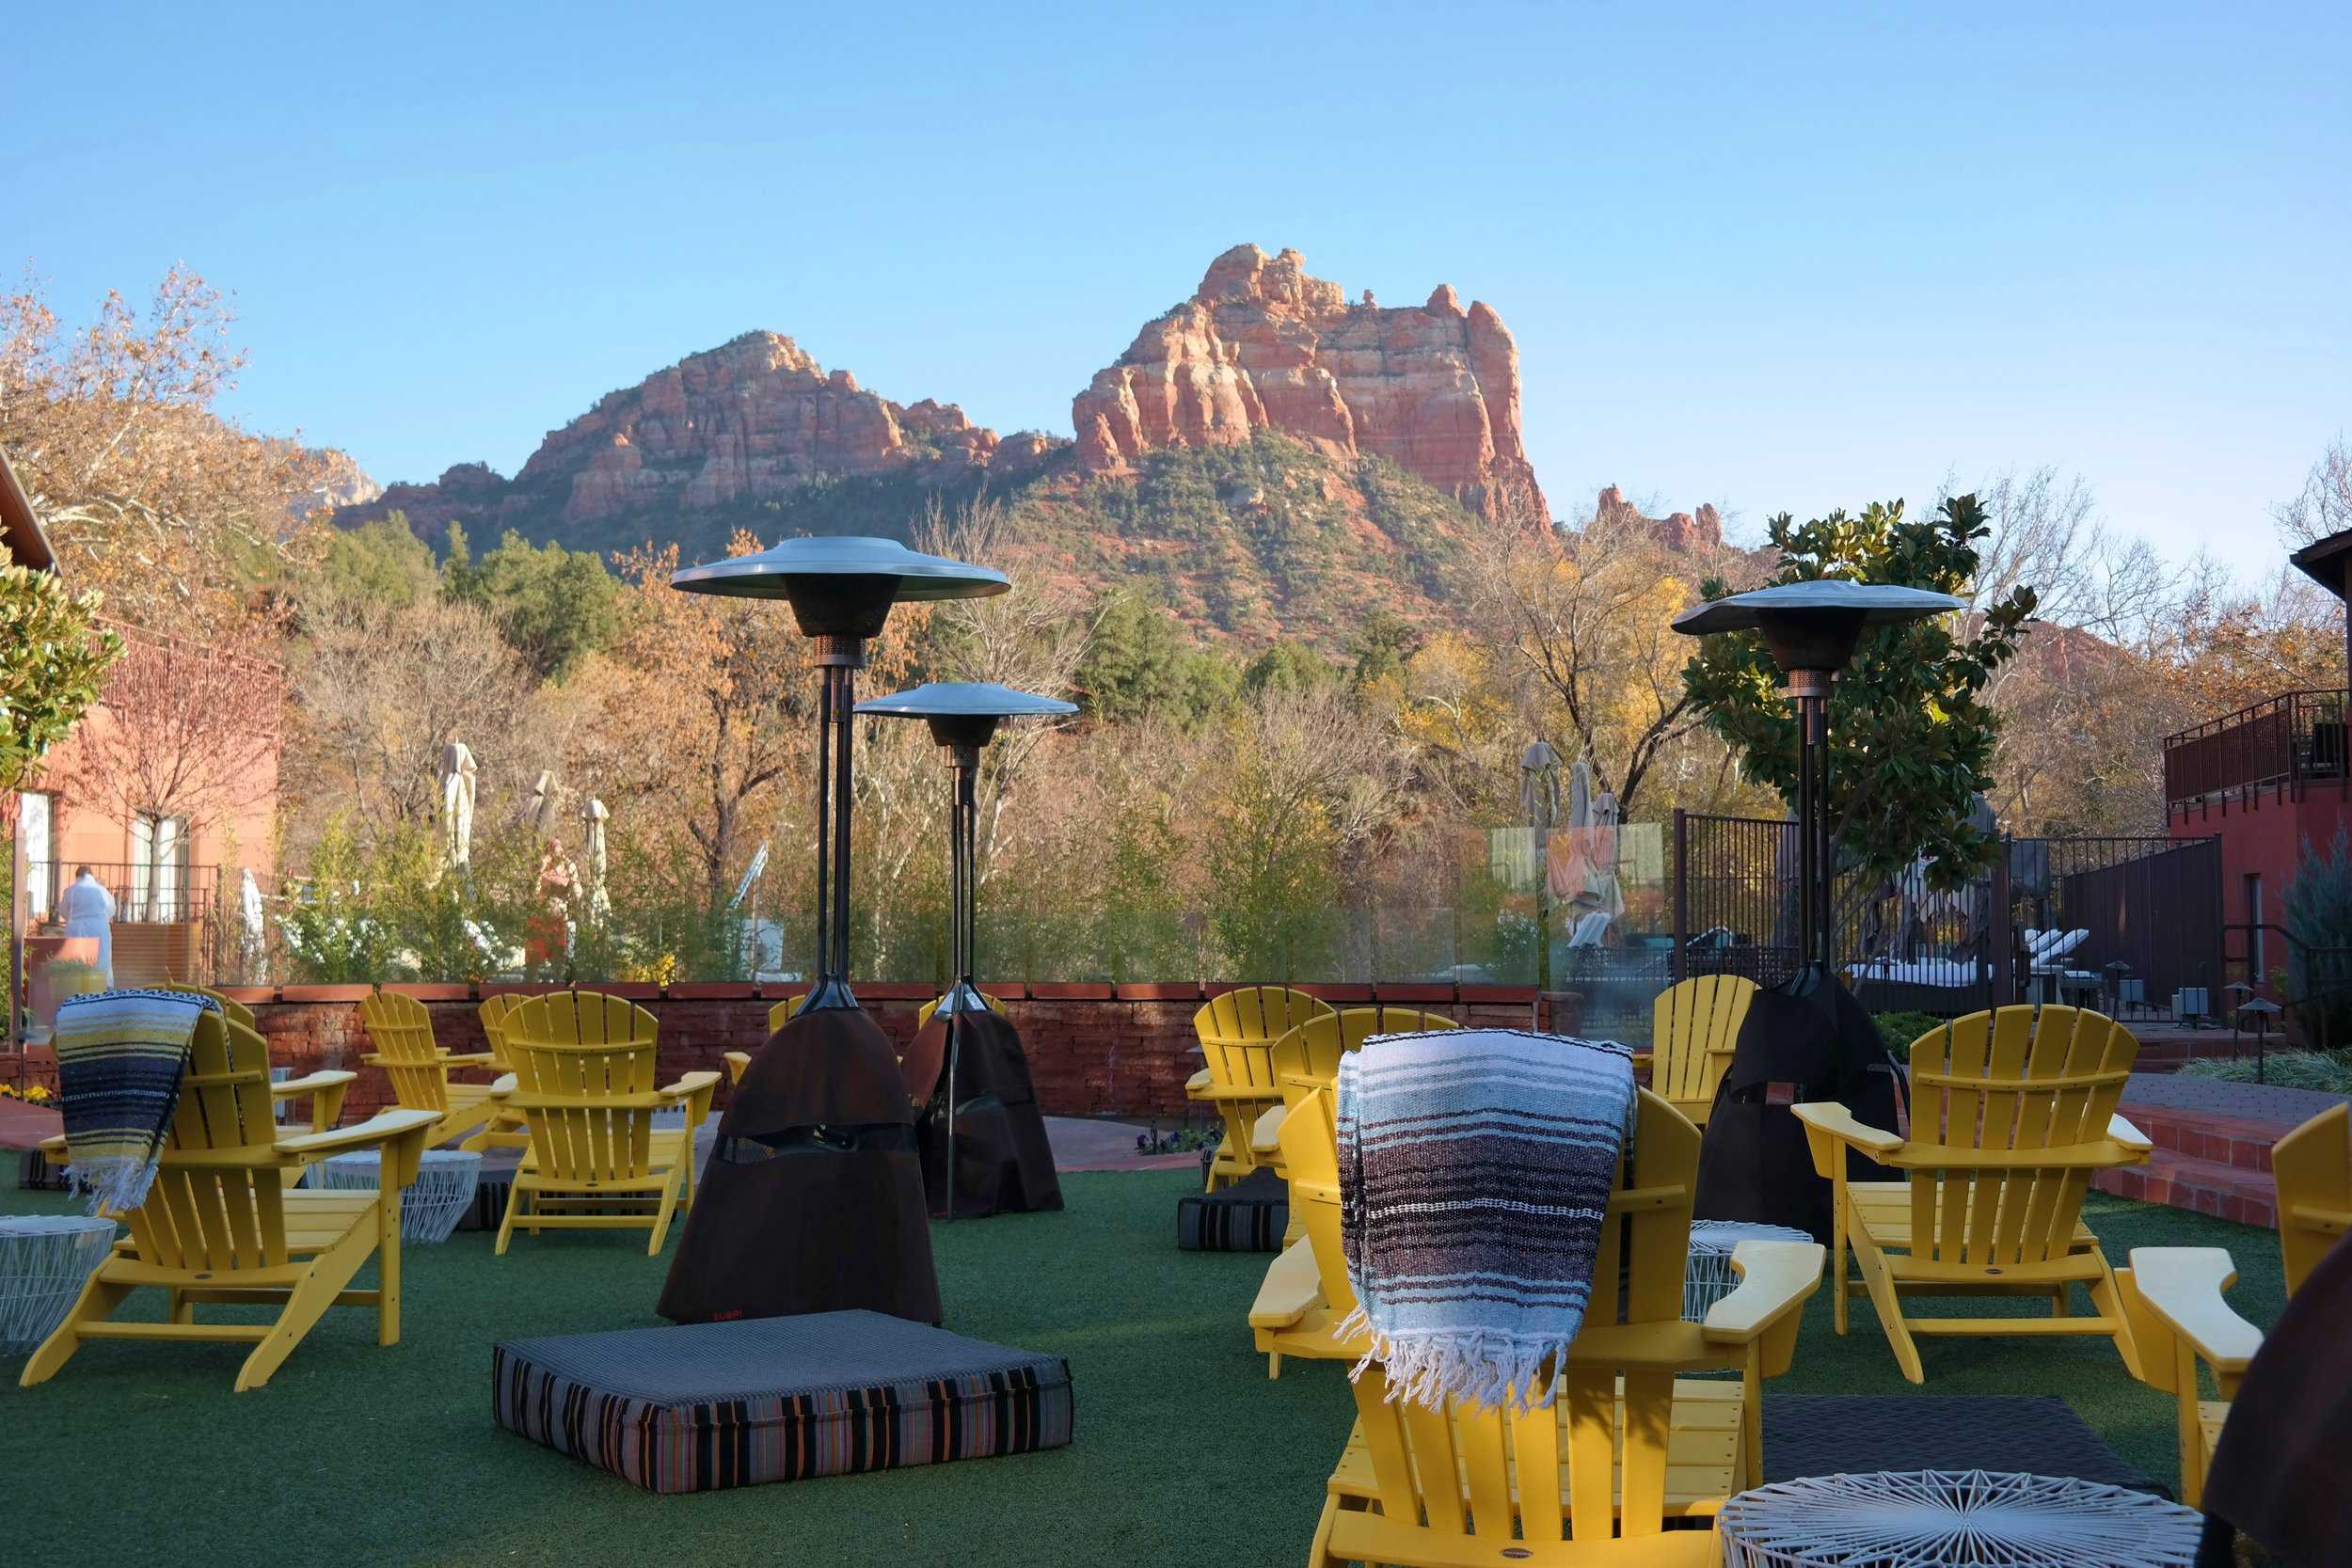 The view of Camelhead Rock from The Courtyard at Amara Resort